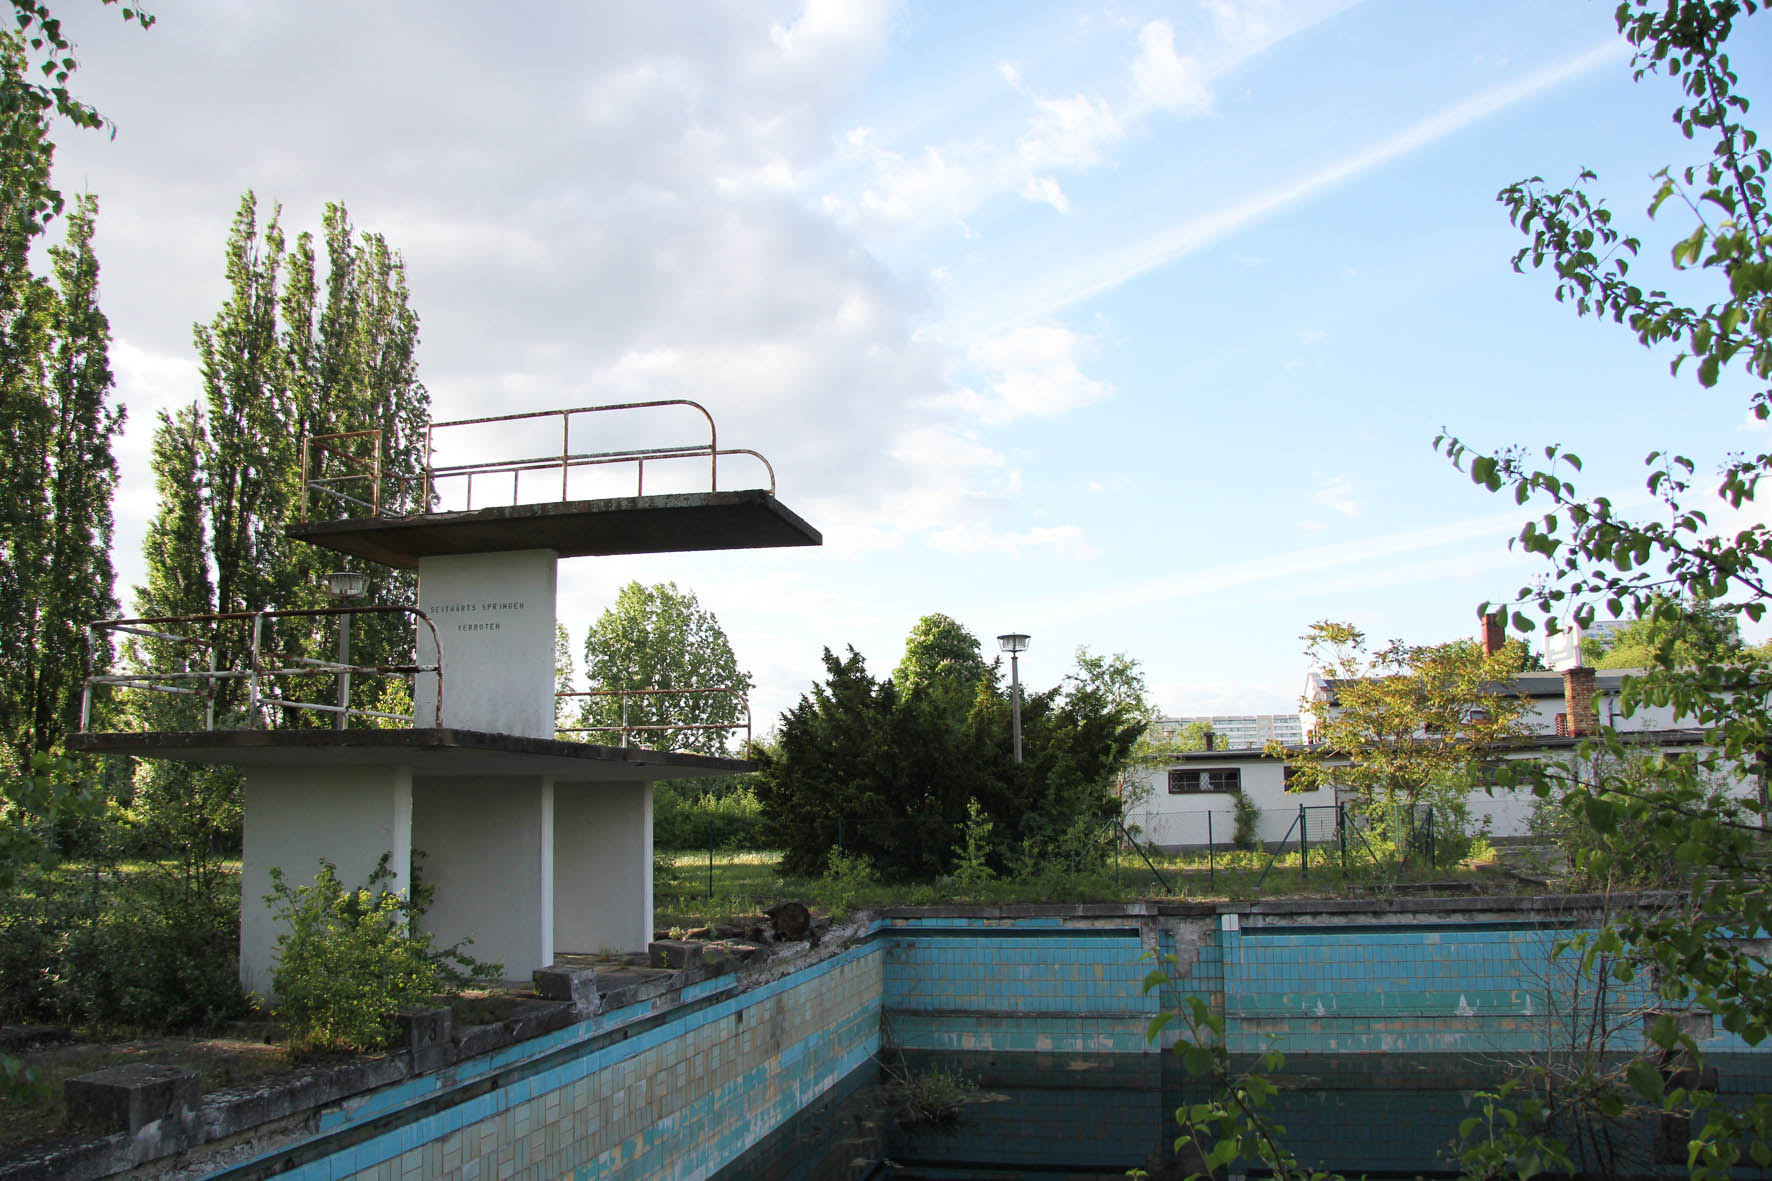 bvg freibad an abandoned open air pool in berlin berlin love. Black Bedroom Furniture Sets. Home Design Ideas